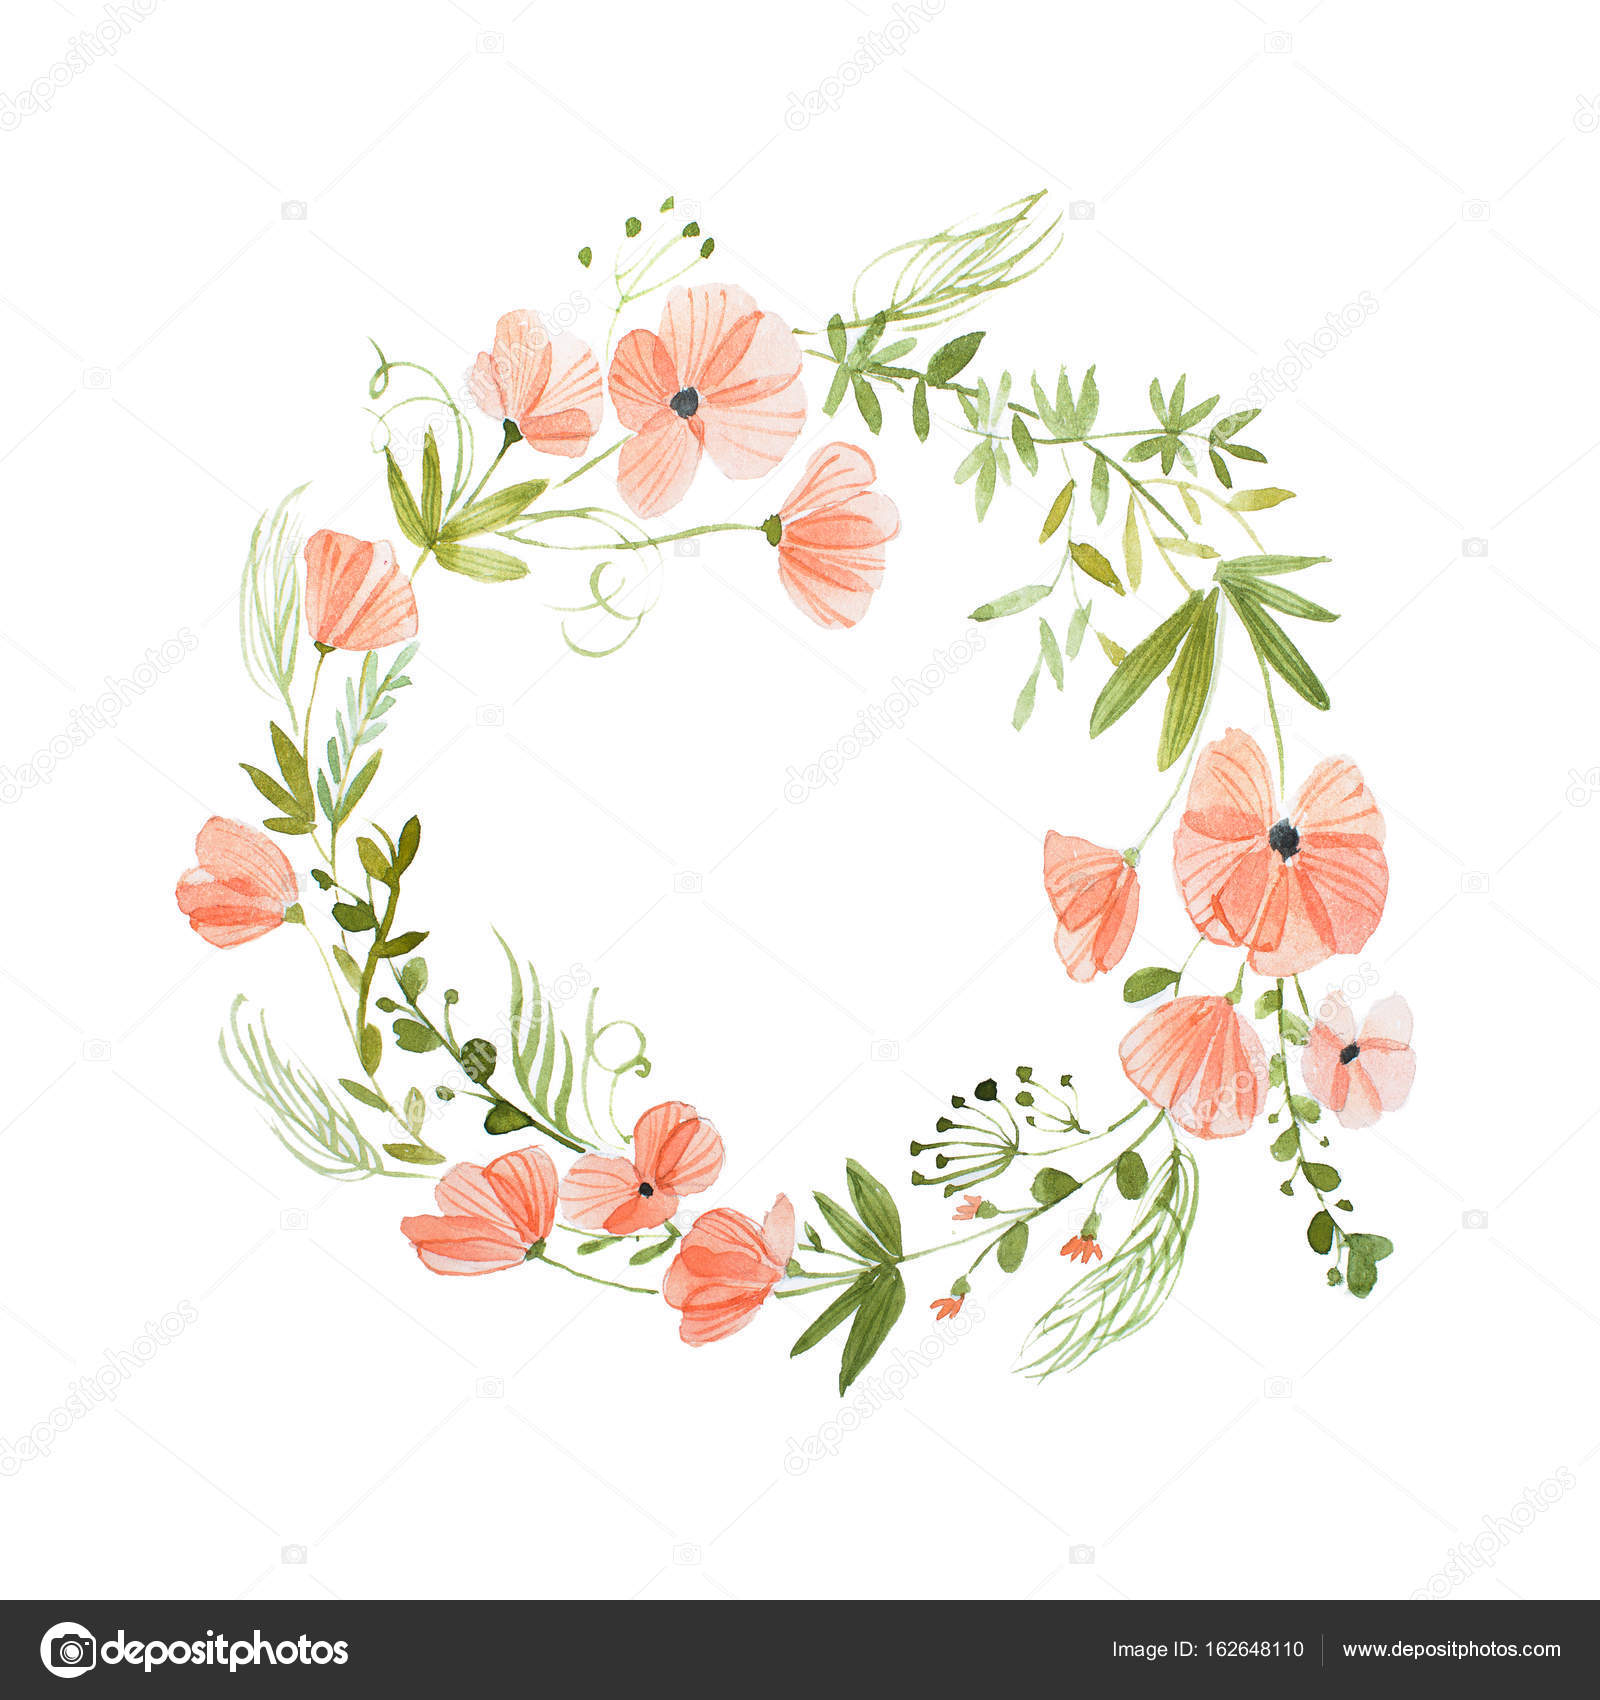 Aquarelle Painting Of Floral Wreath Made Of Wild Flowers Isolated On White Background Stock Photo Image By C Undrey 162648110